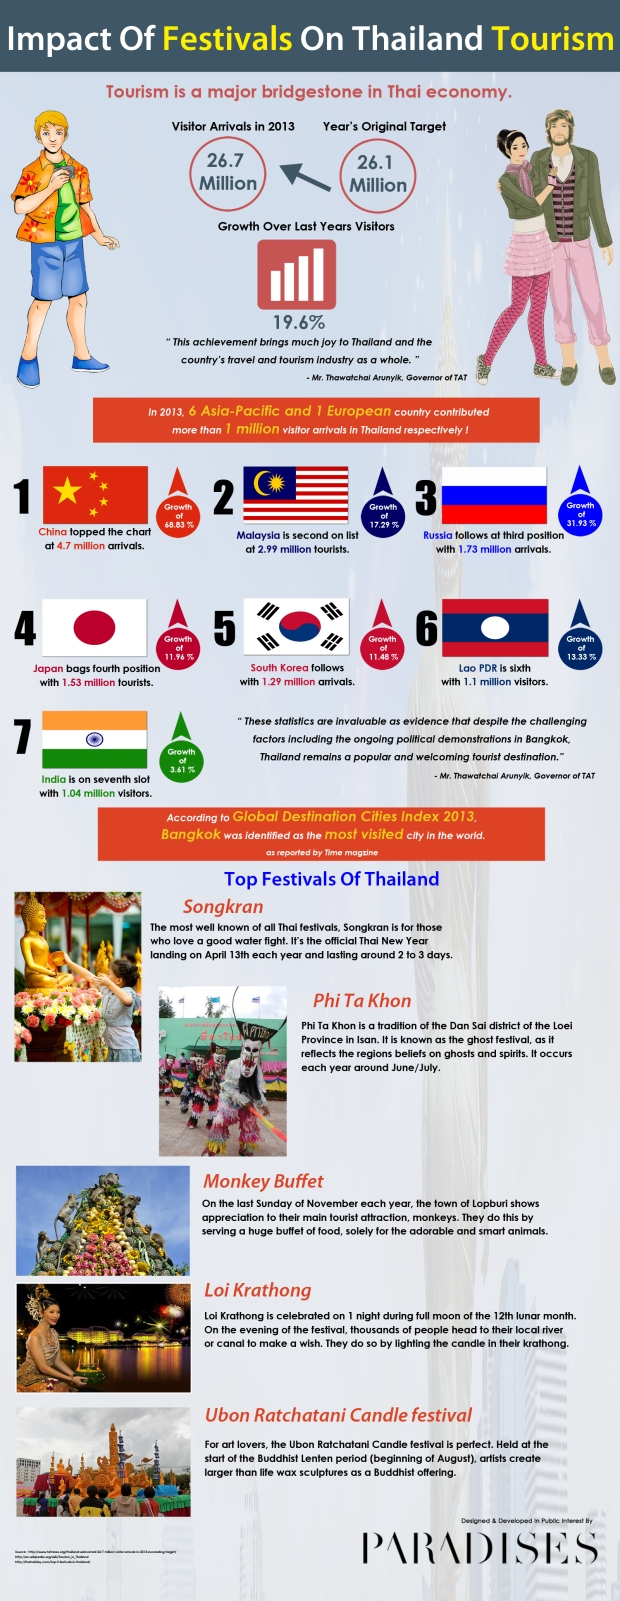 Impact Of Festivals On Thailand Tourism